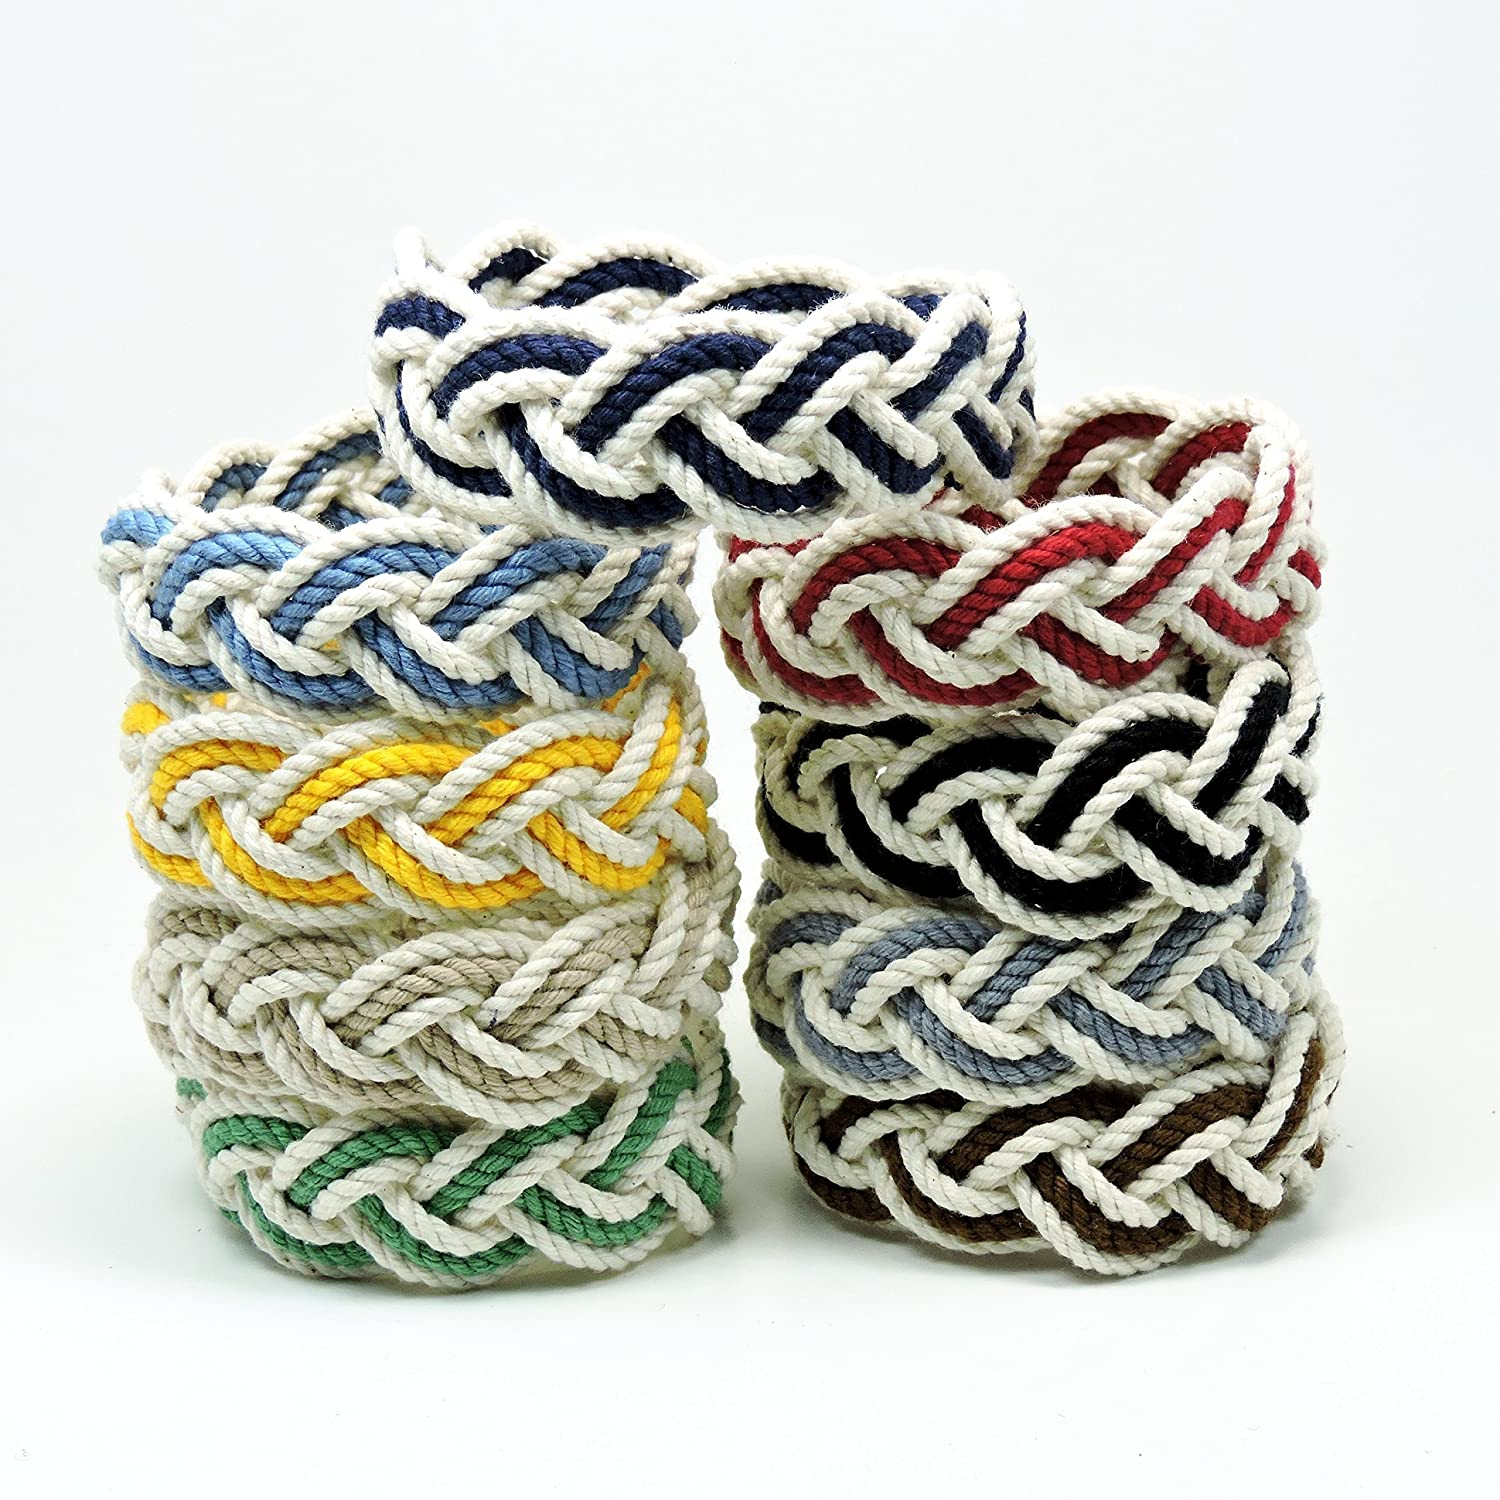 a9205a2481acd Sailor Knot Rope Bracelet White Cotton with Nautical Stripe